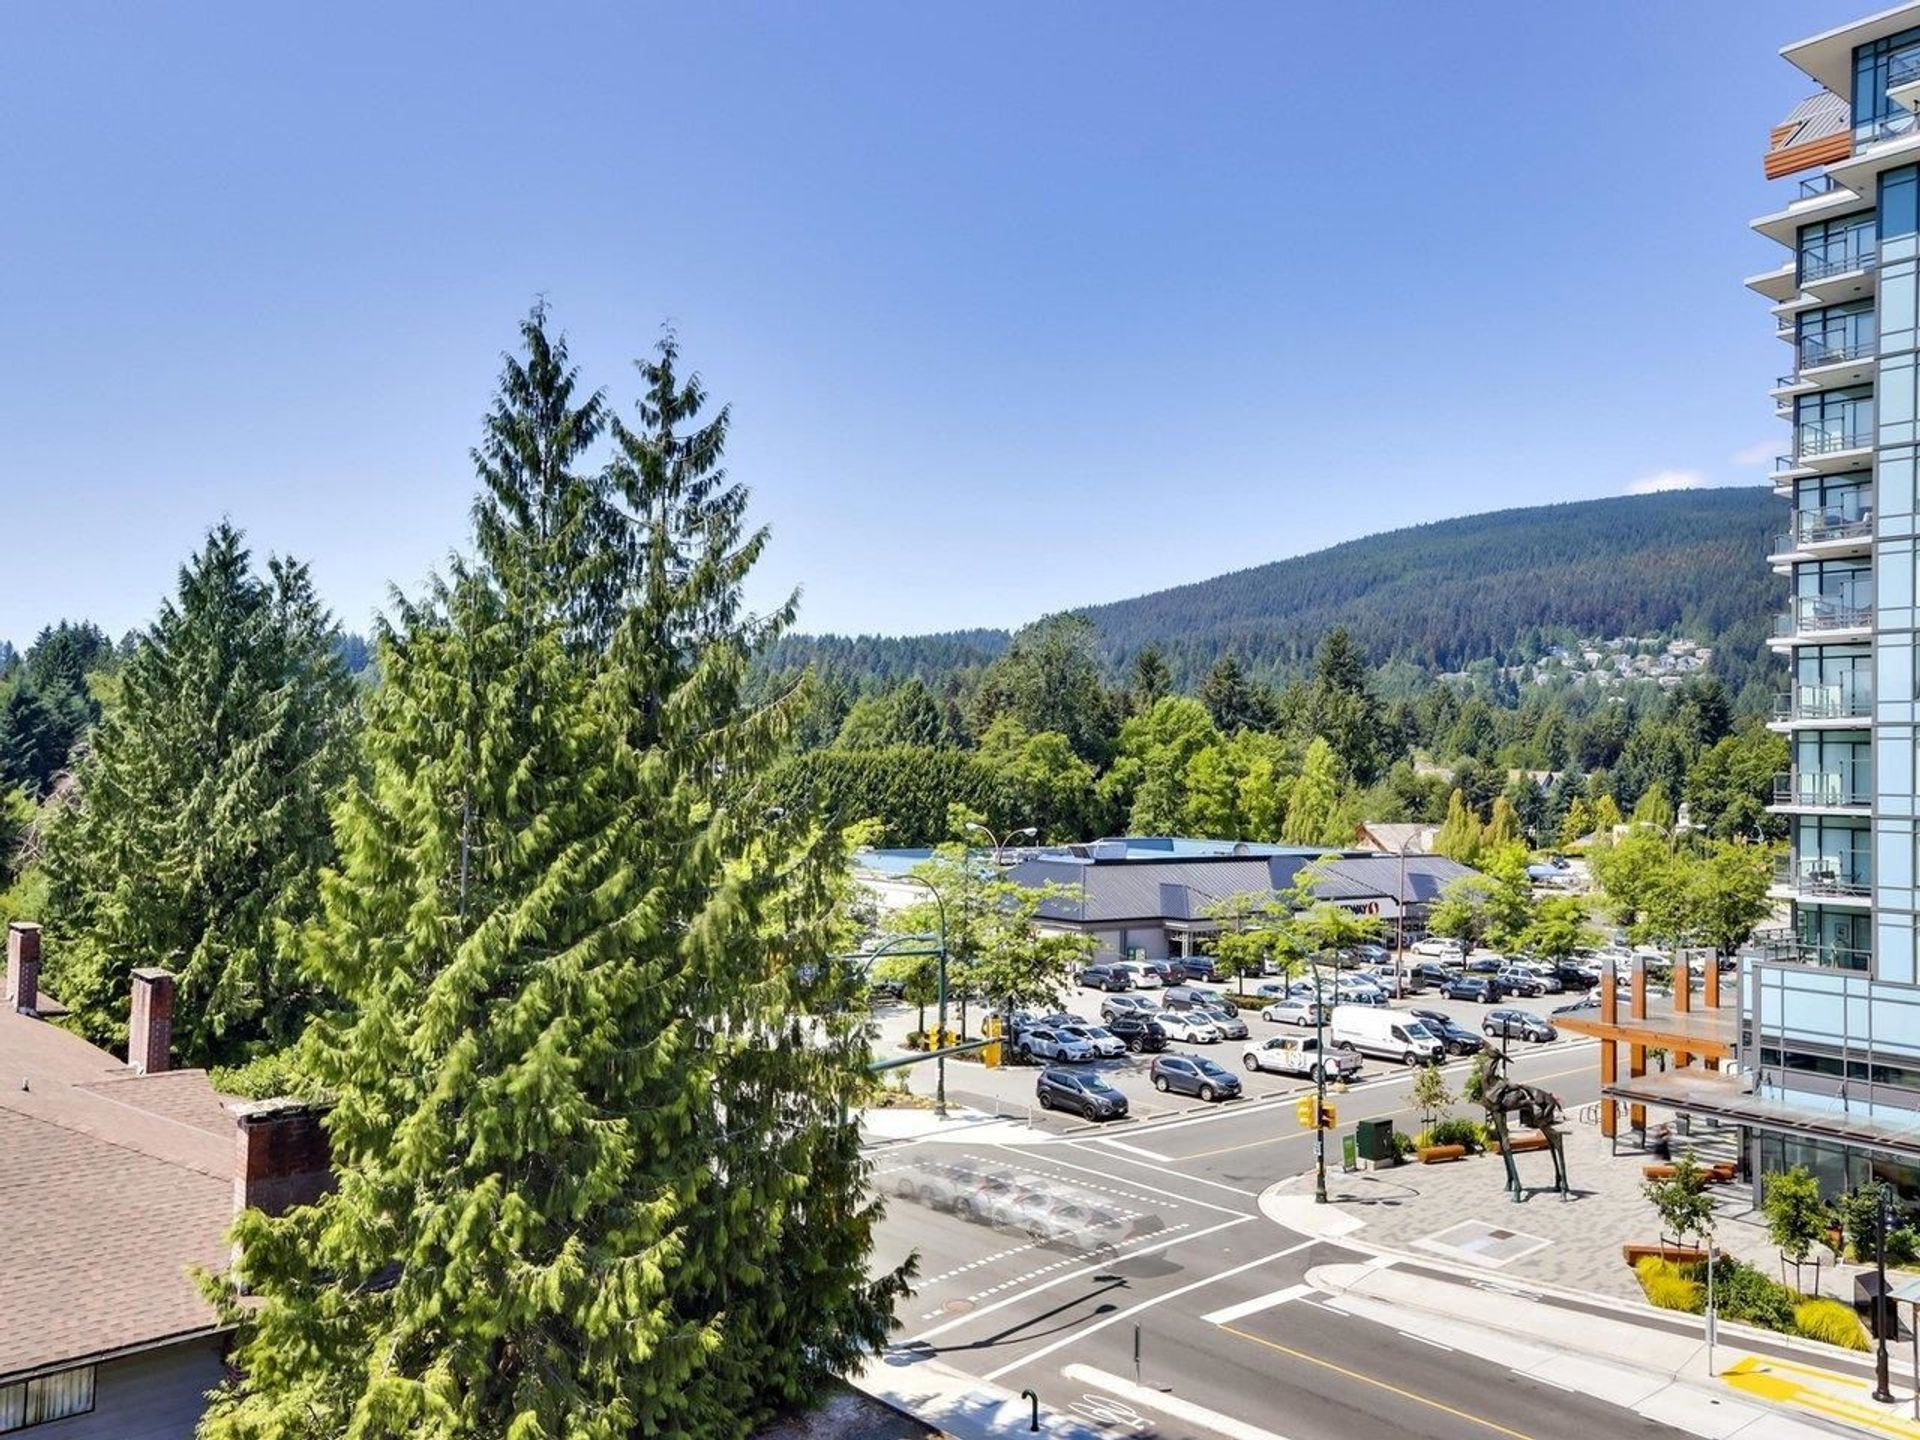 2663-library-lane-lynn-valley-north-vancouver-21-1 at 506 - 2663 Library Lane, Lynn Valley, North Vancouver